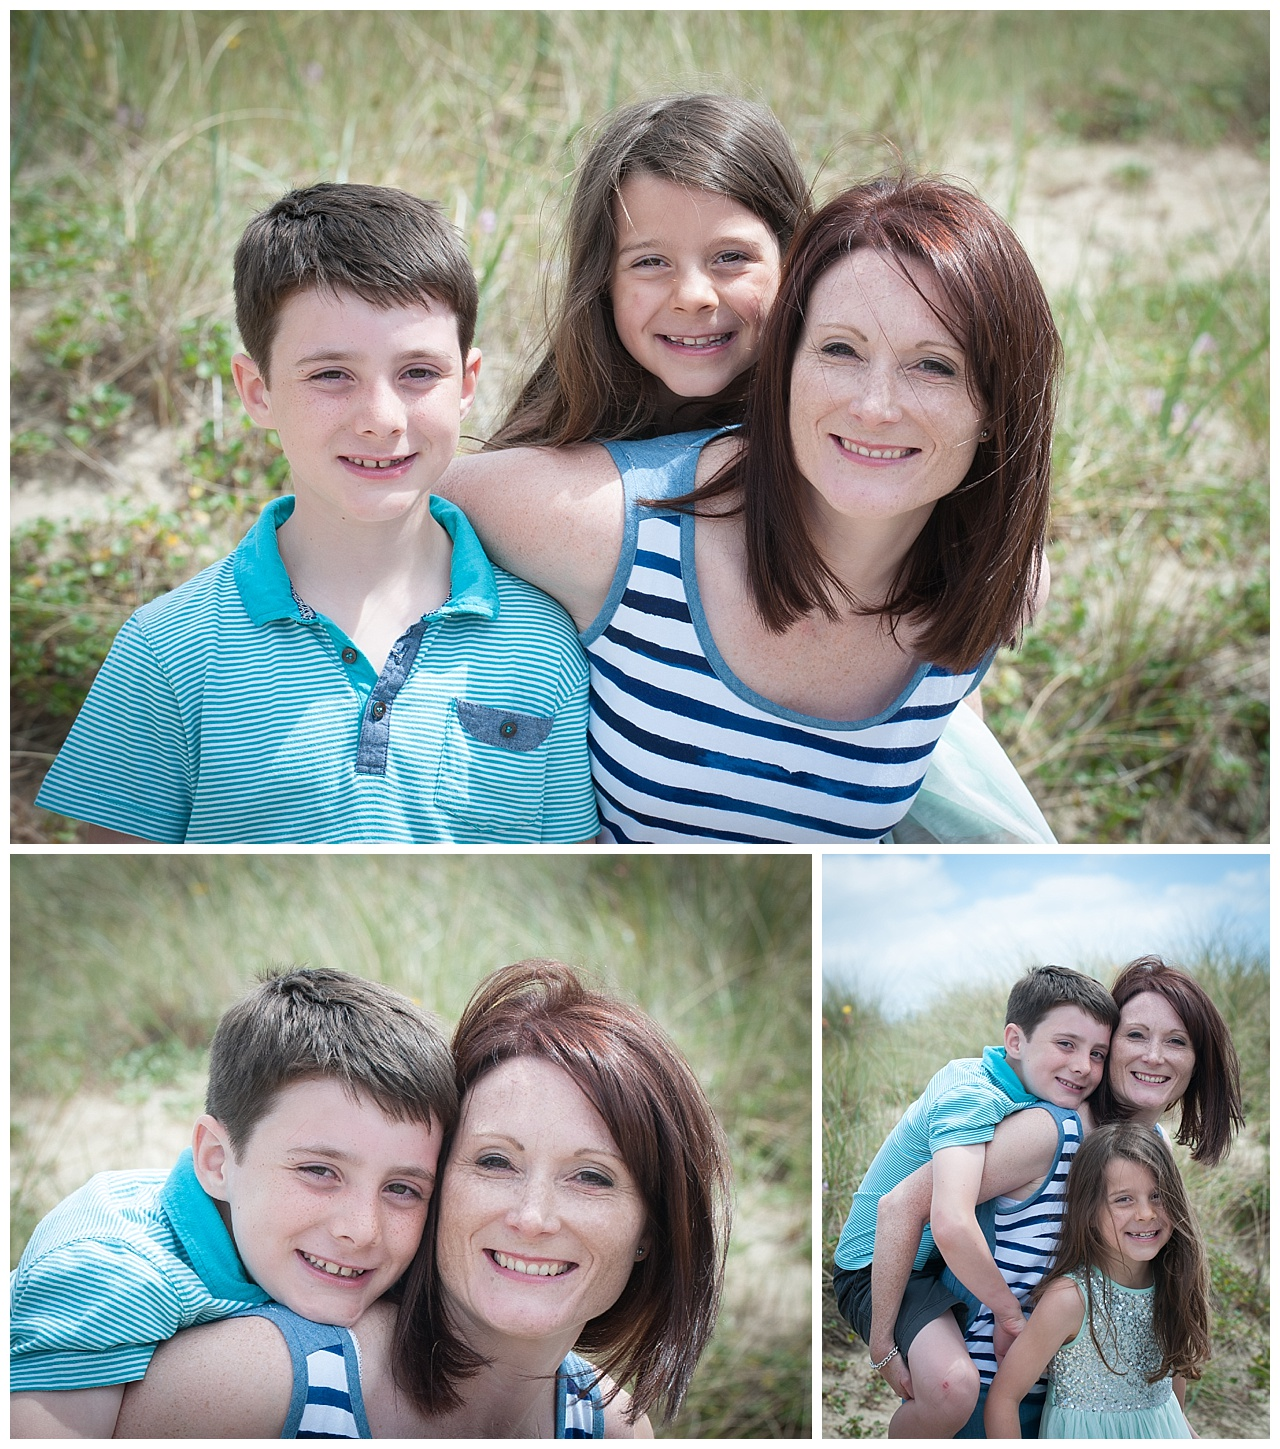 Sandbanks Beach Family location photography